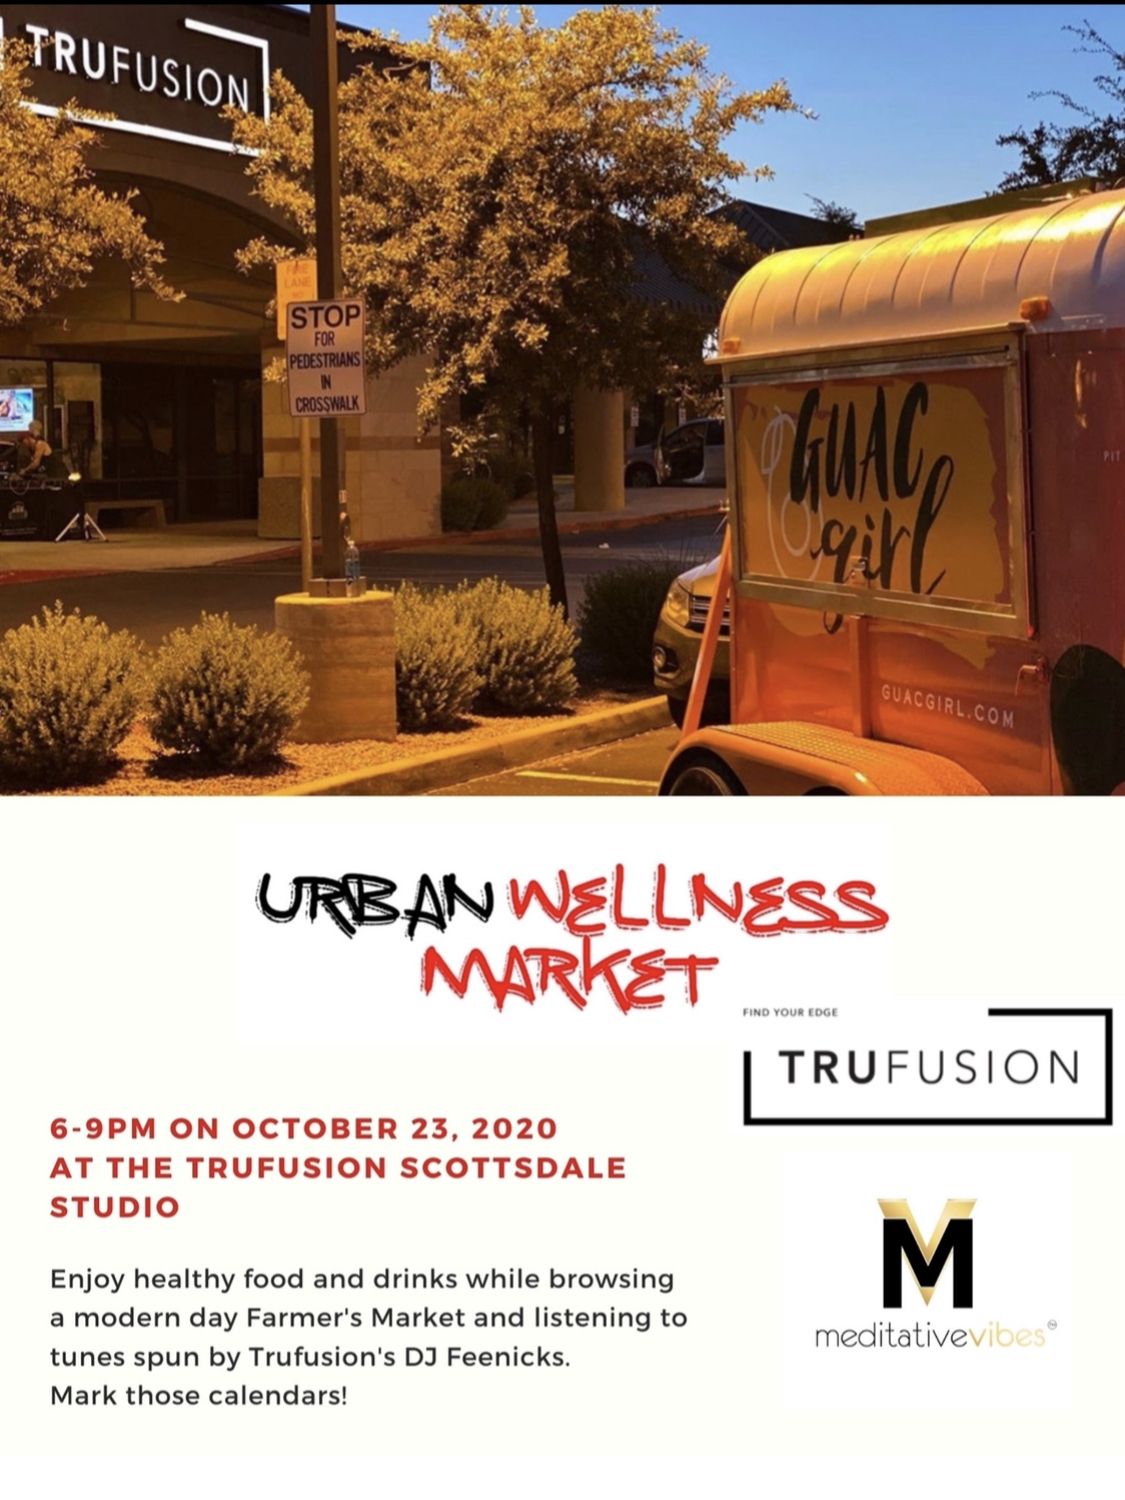 Meditative Vibes & Urban Wellness Market